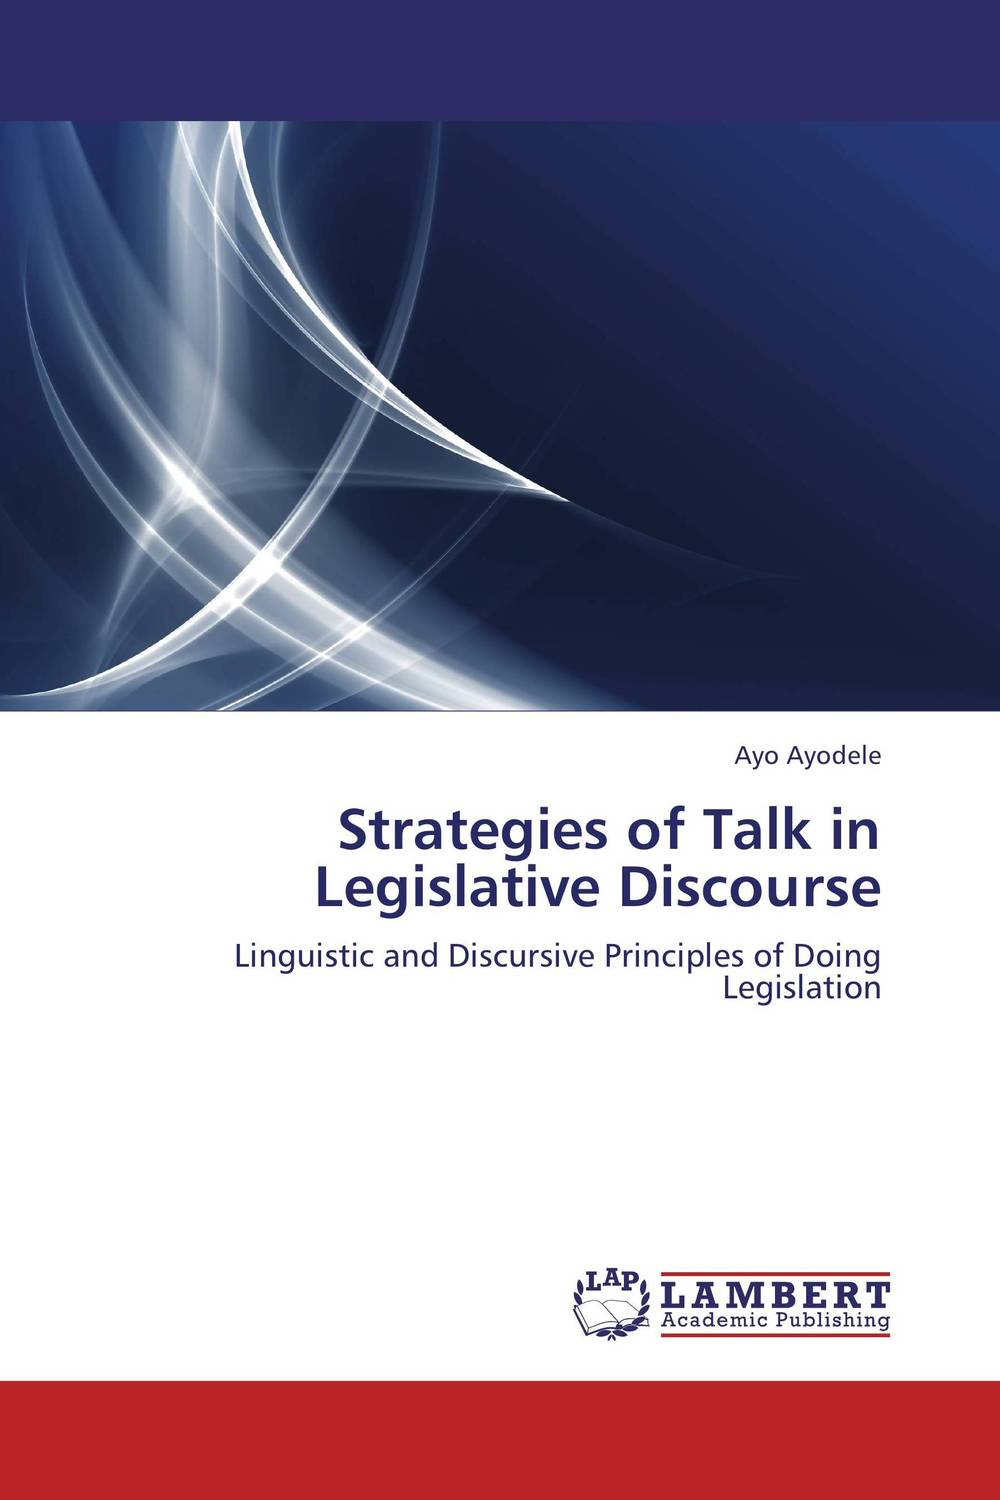 Strategies of Talk in Legislative Discourse